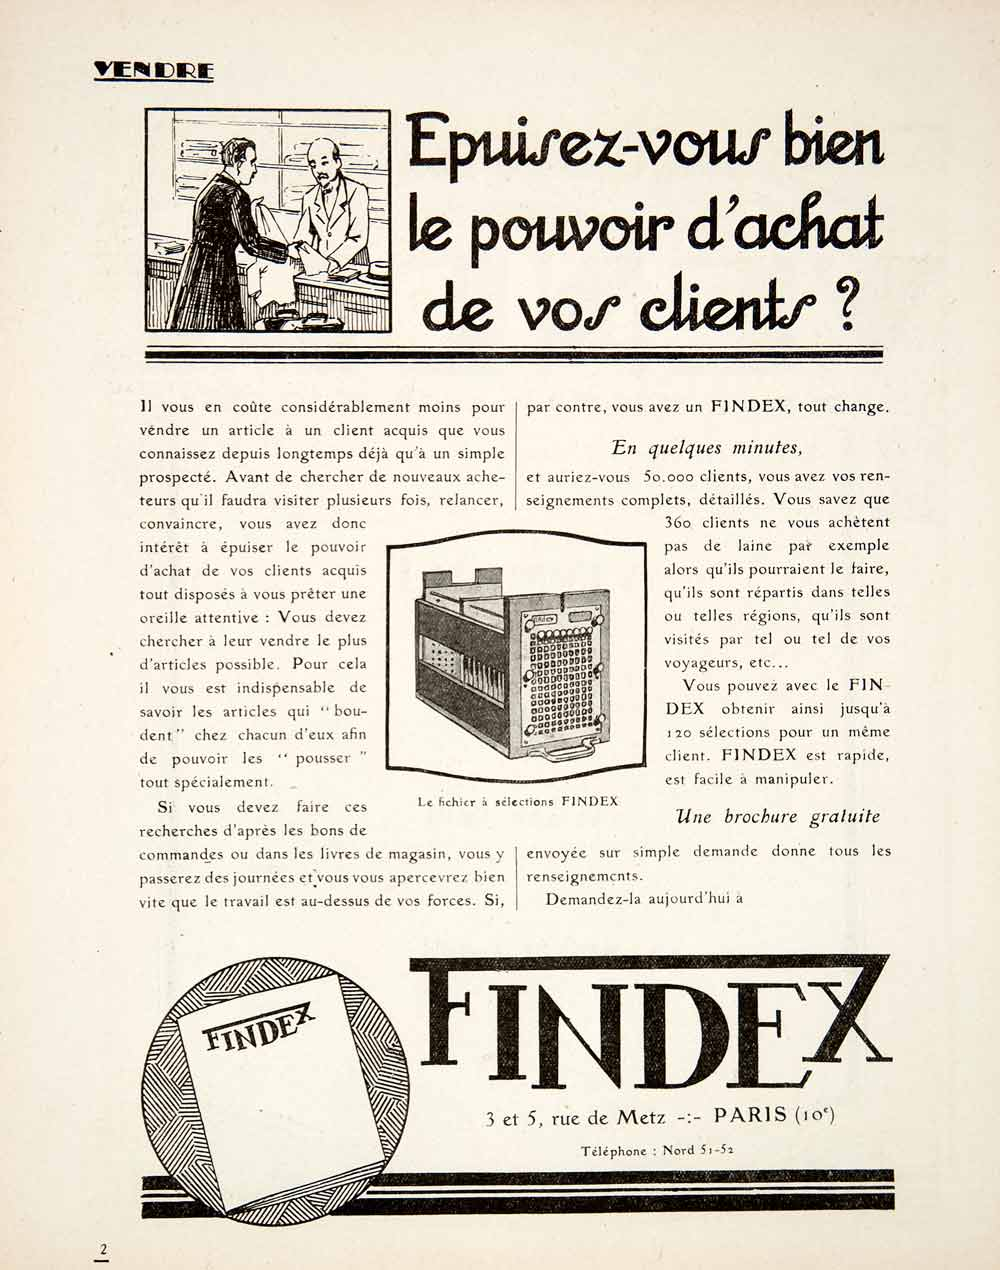 1925 Ad Findex Client System Filing French 3 Metz Paris Business VEN3